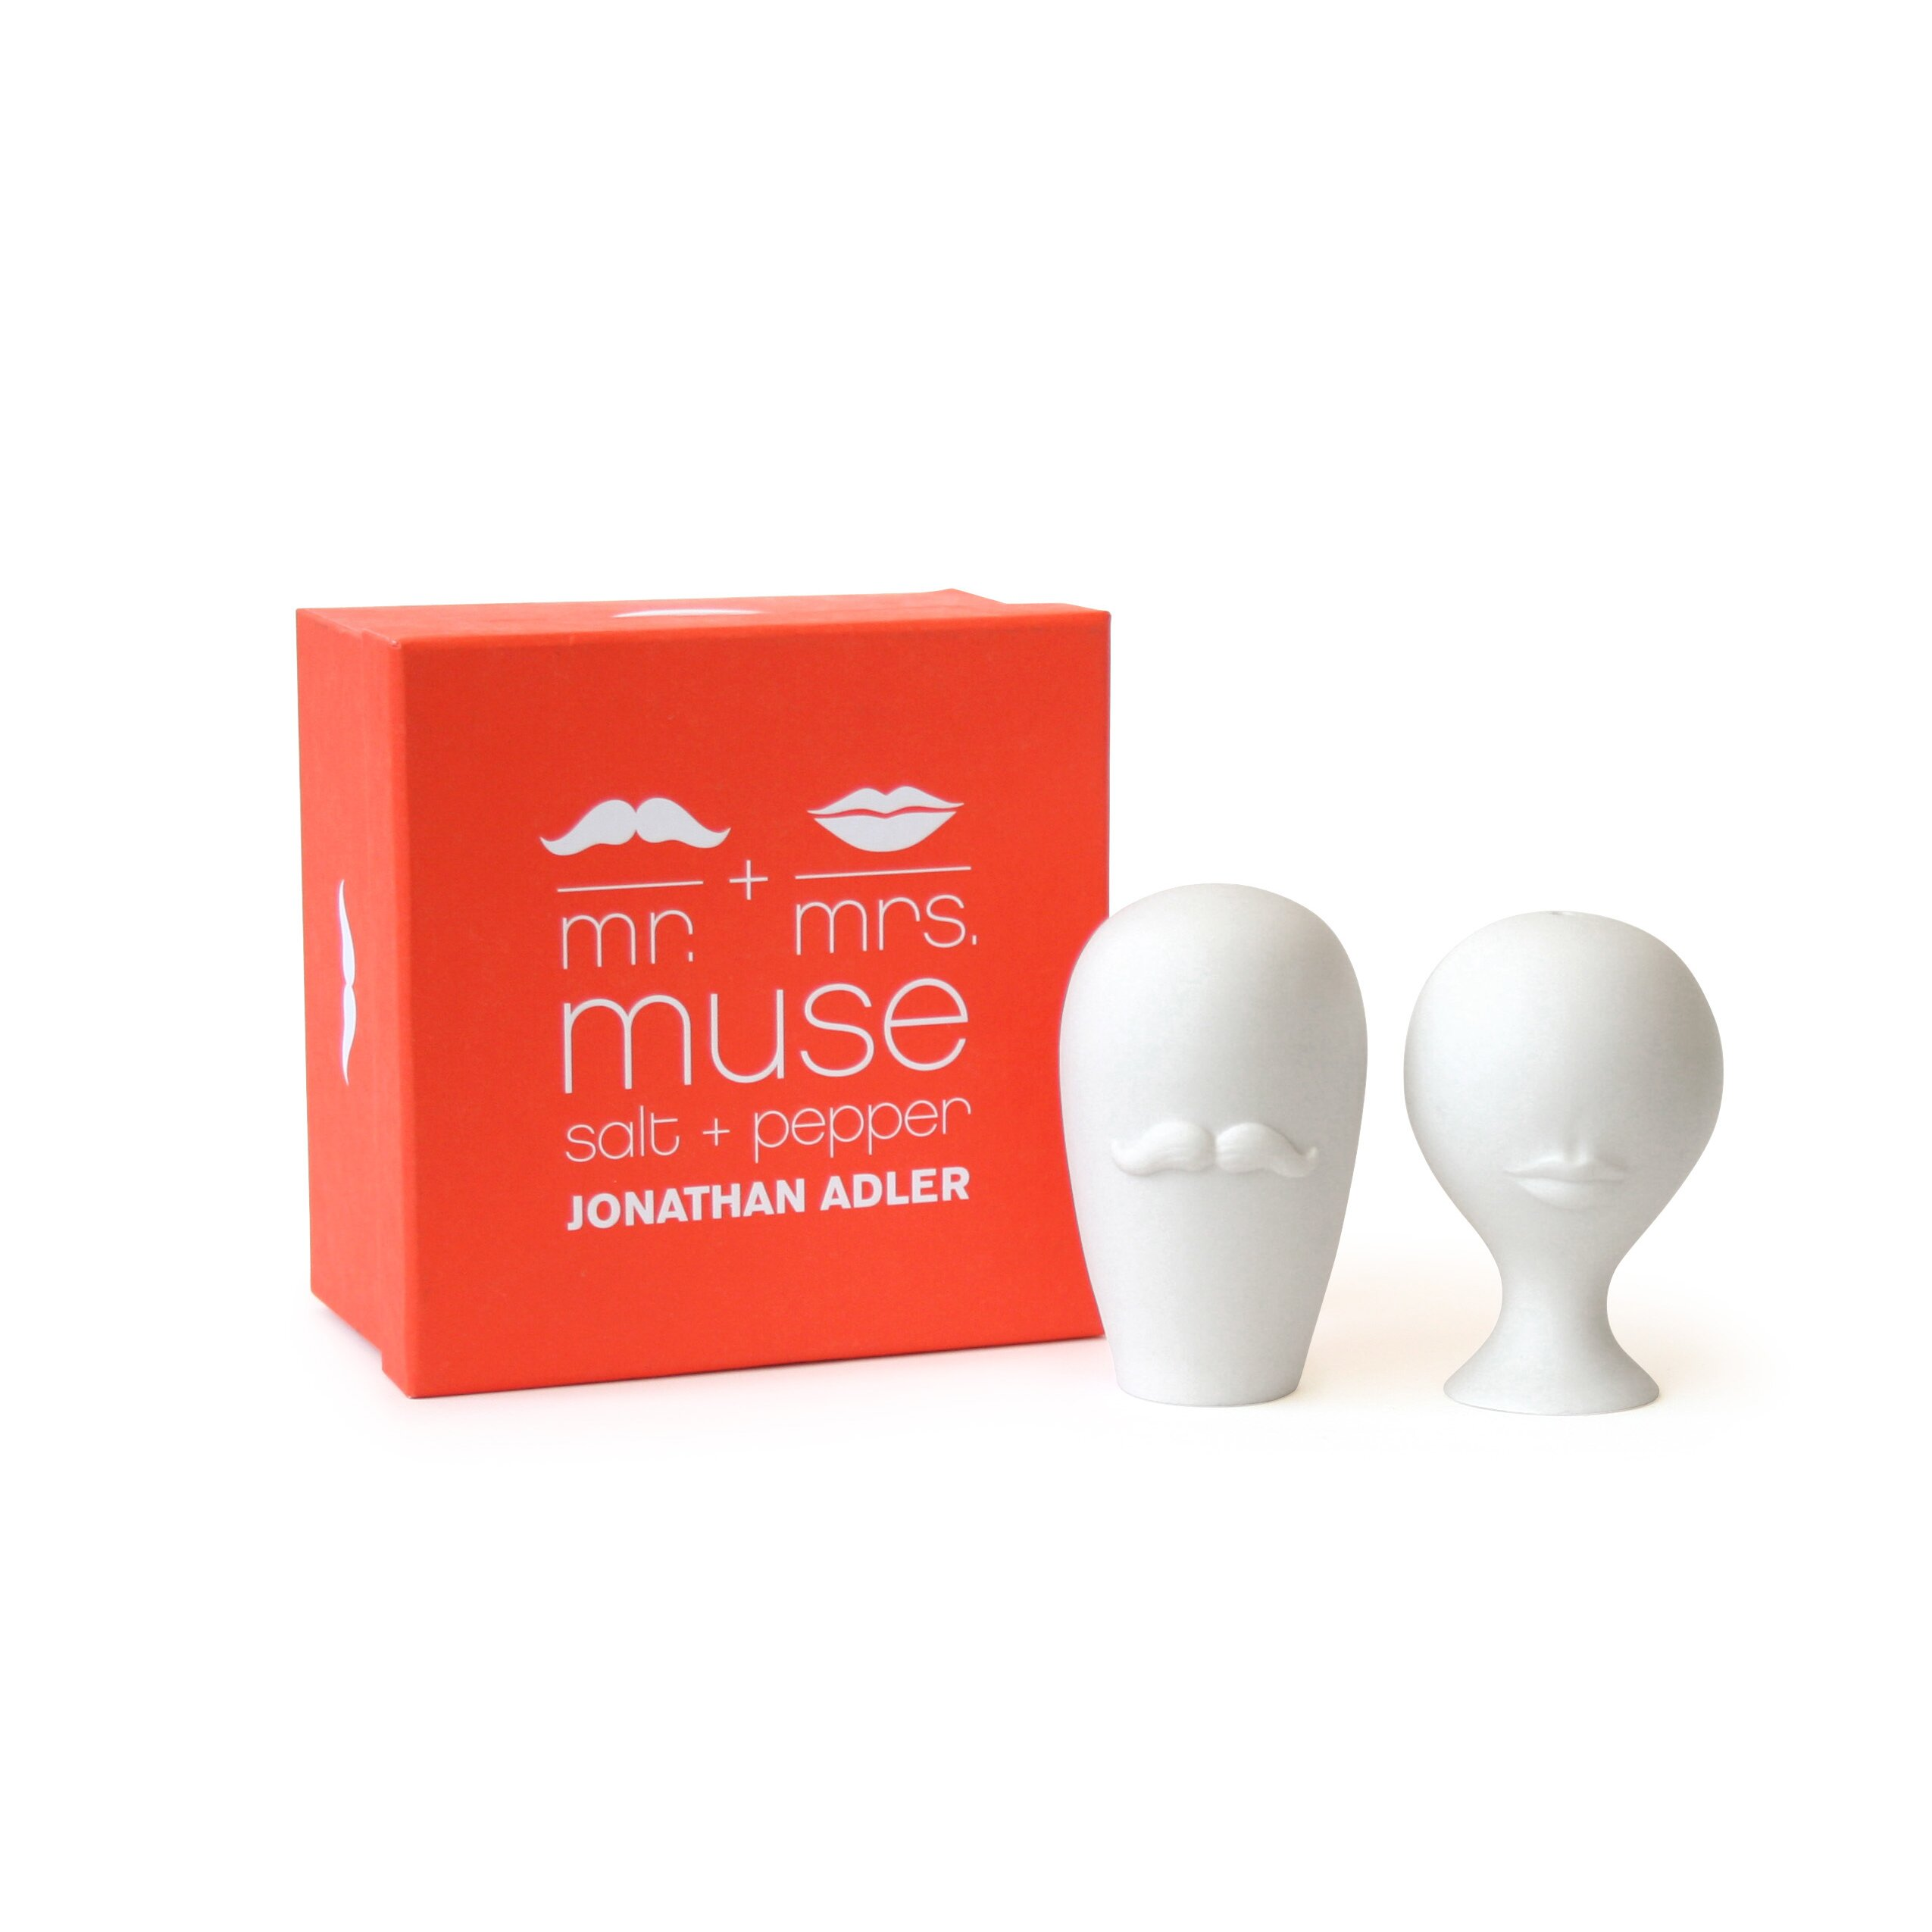 Mr and mrs muse salt pepper shaker reviews allmodern - Jonathan adler salt and pepper ...